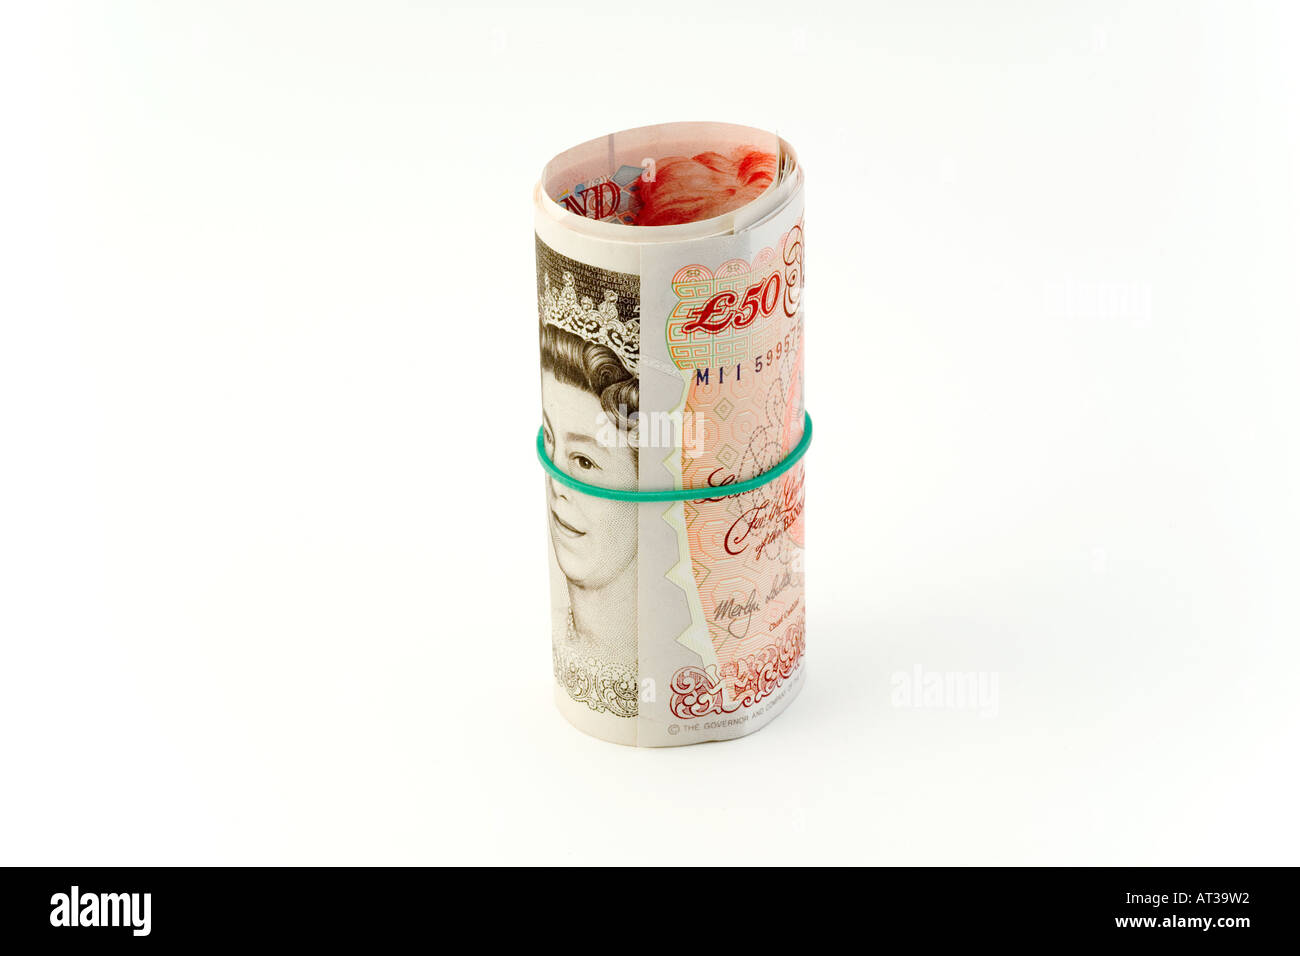 British currency Banknotes £10 roll UK - Stock Image